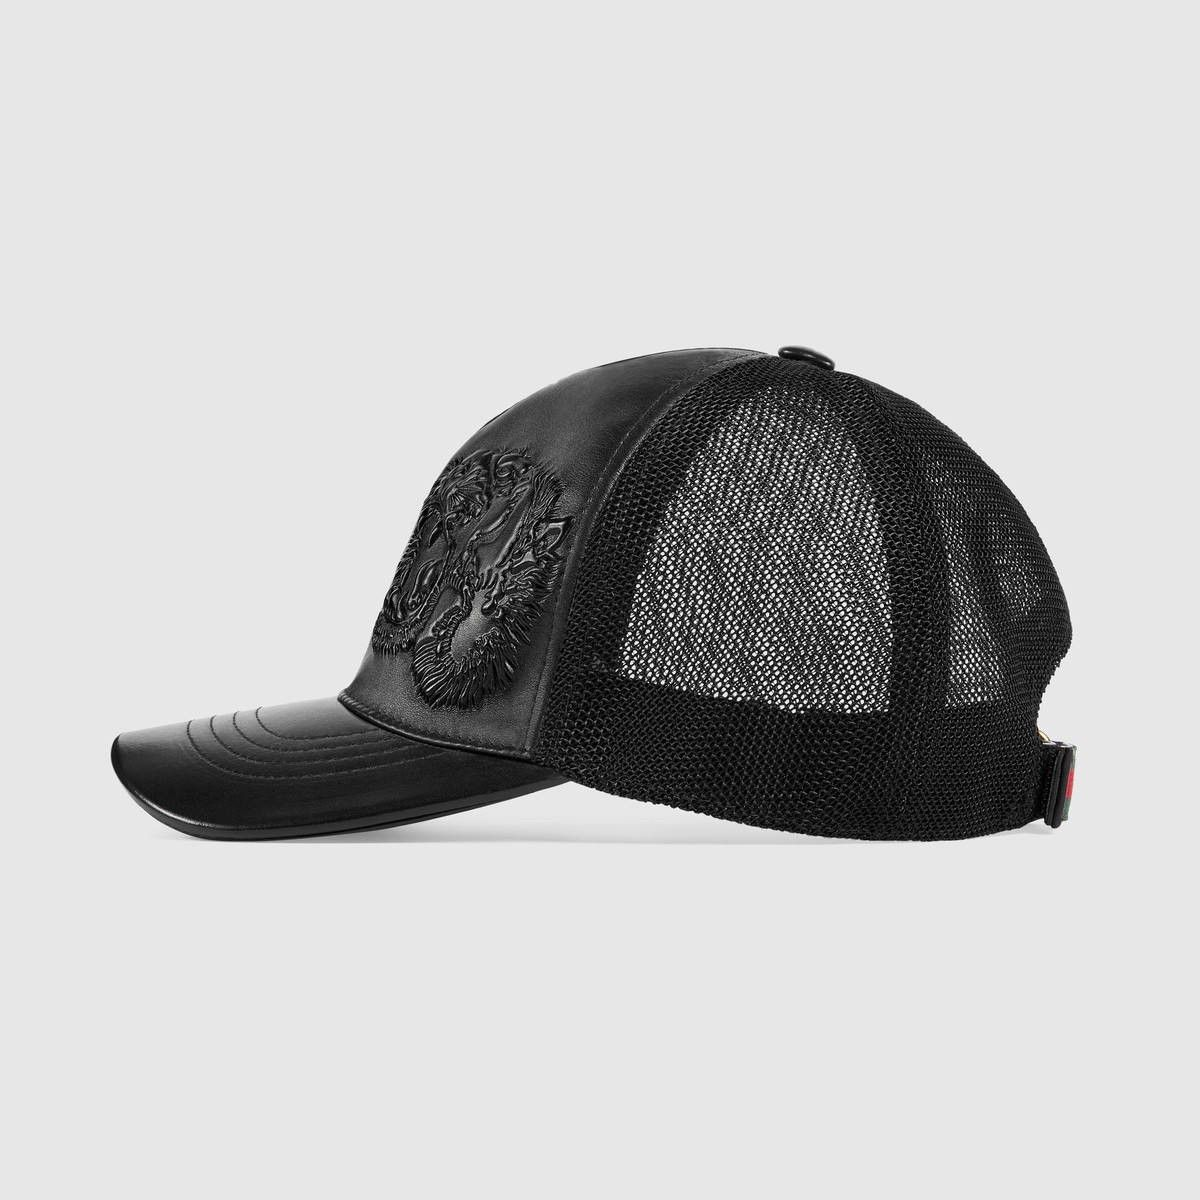 GUCCI Tigers embossed leather baseball hat - embossed black leather.  gucci    4dfbc51ca79